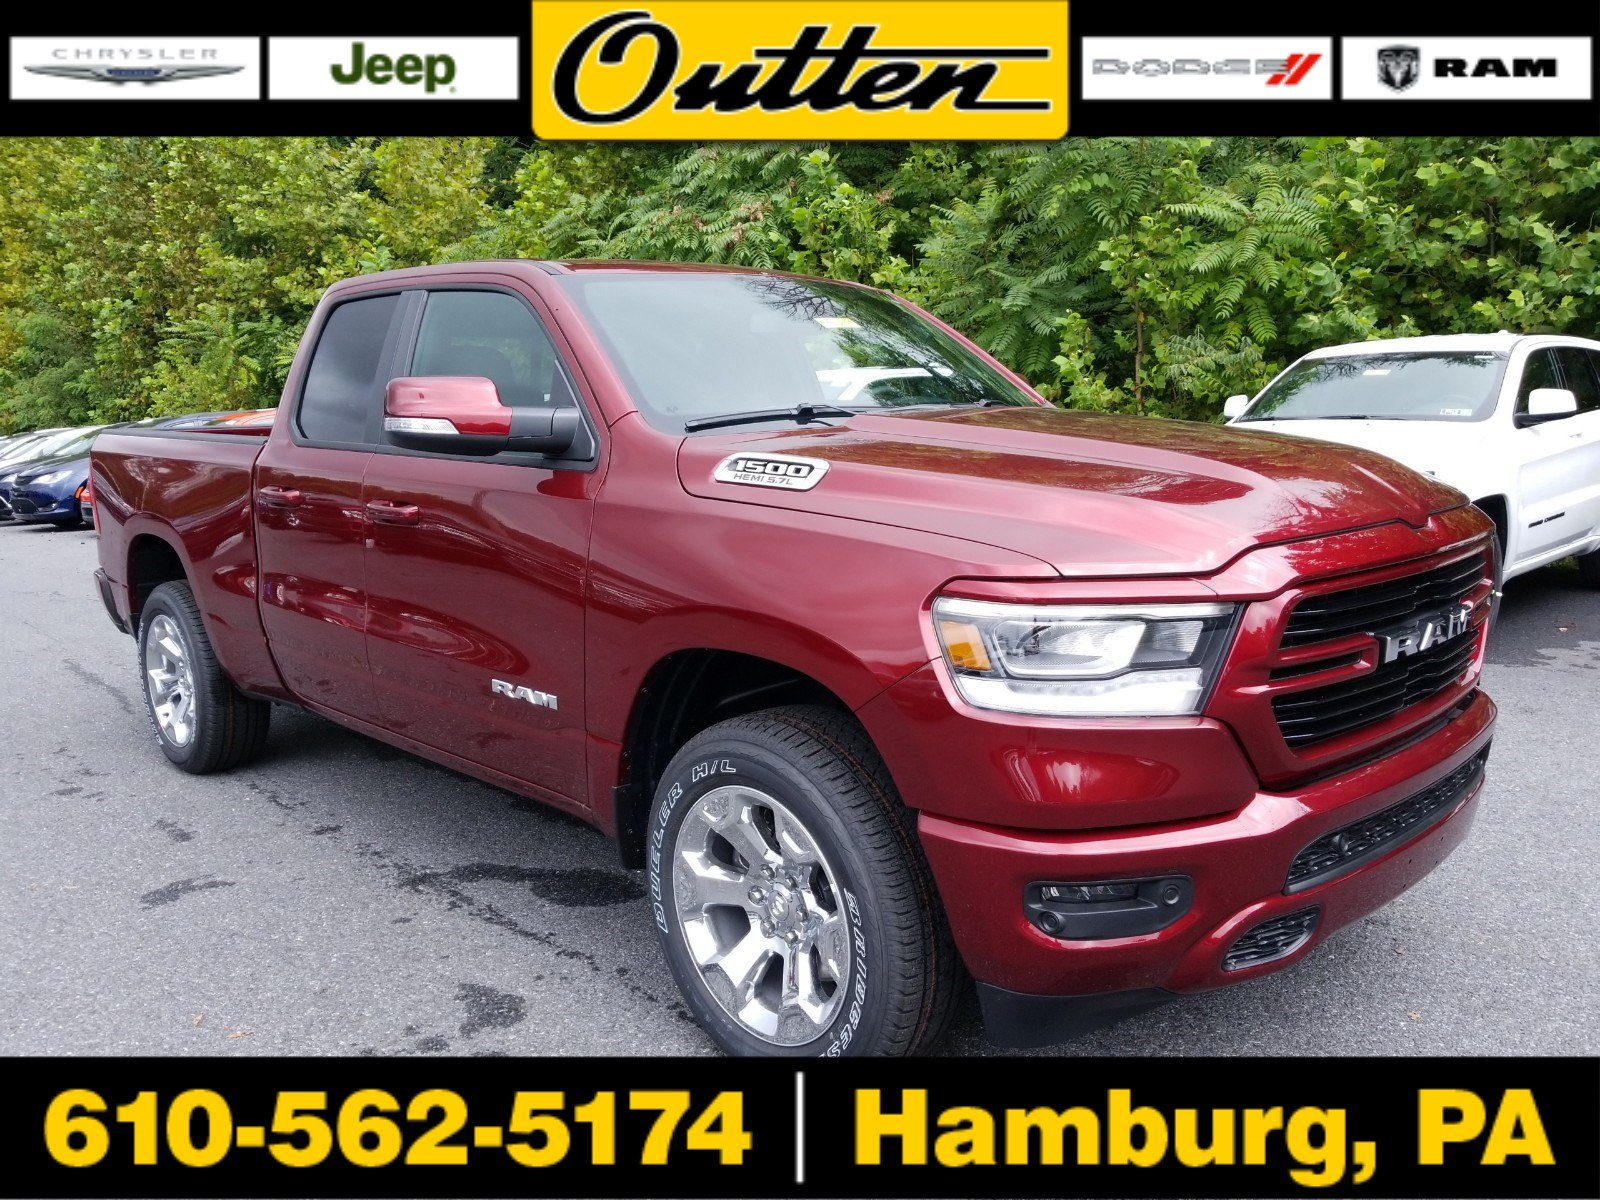 New 2019 RAM 1500 Big Horn Lone Star Quad Cab in Hamburg